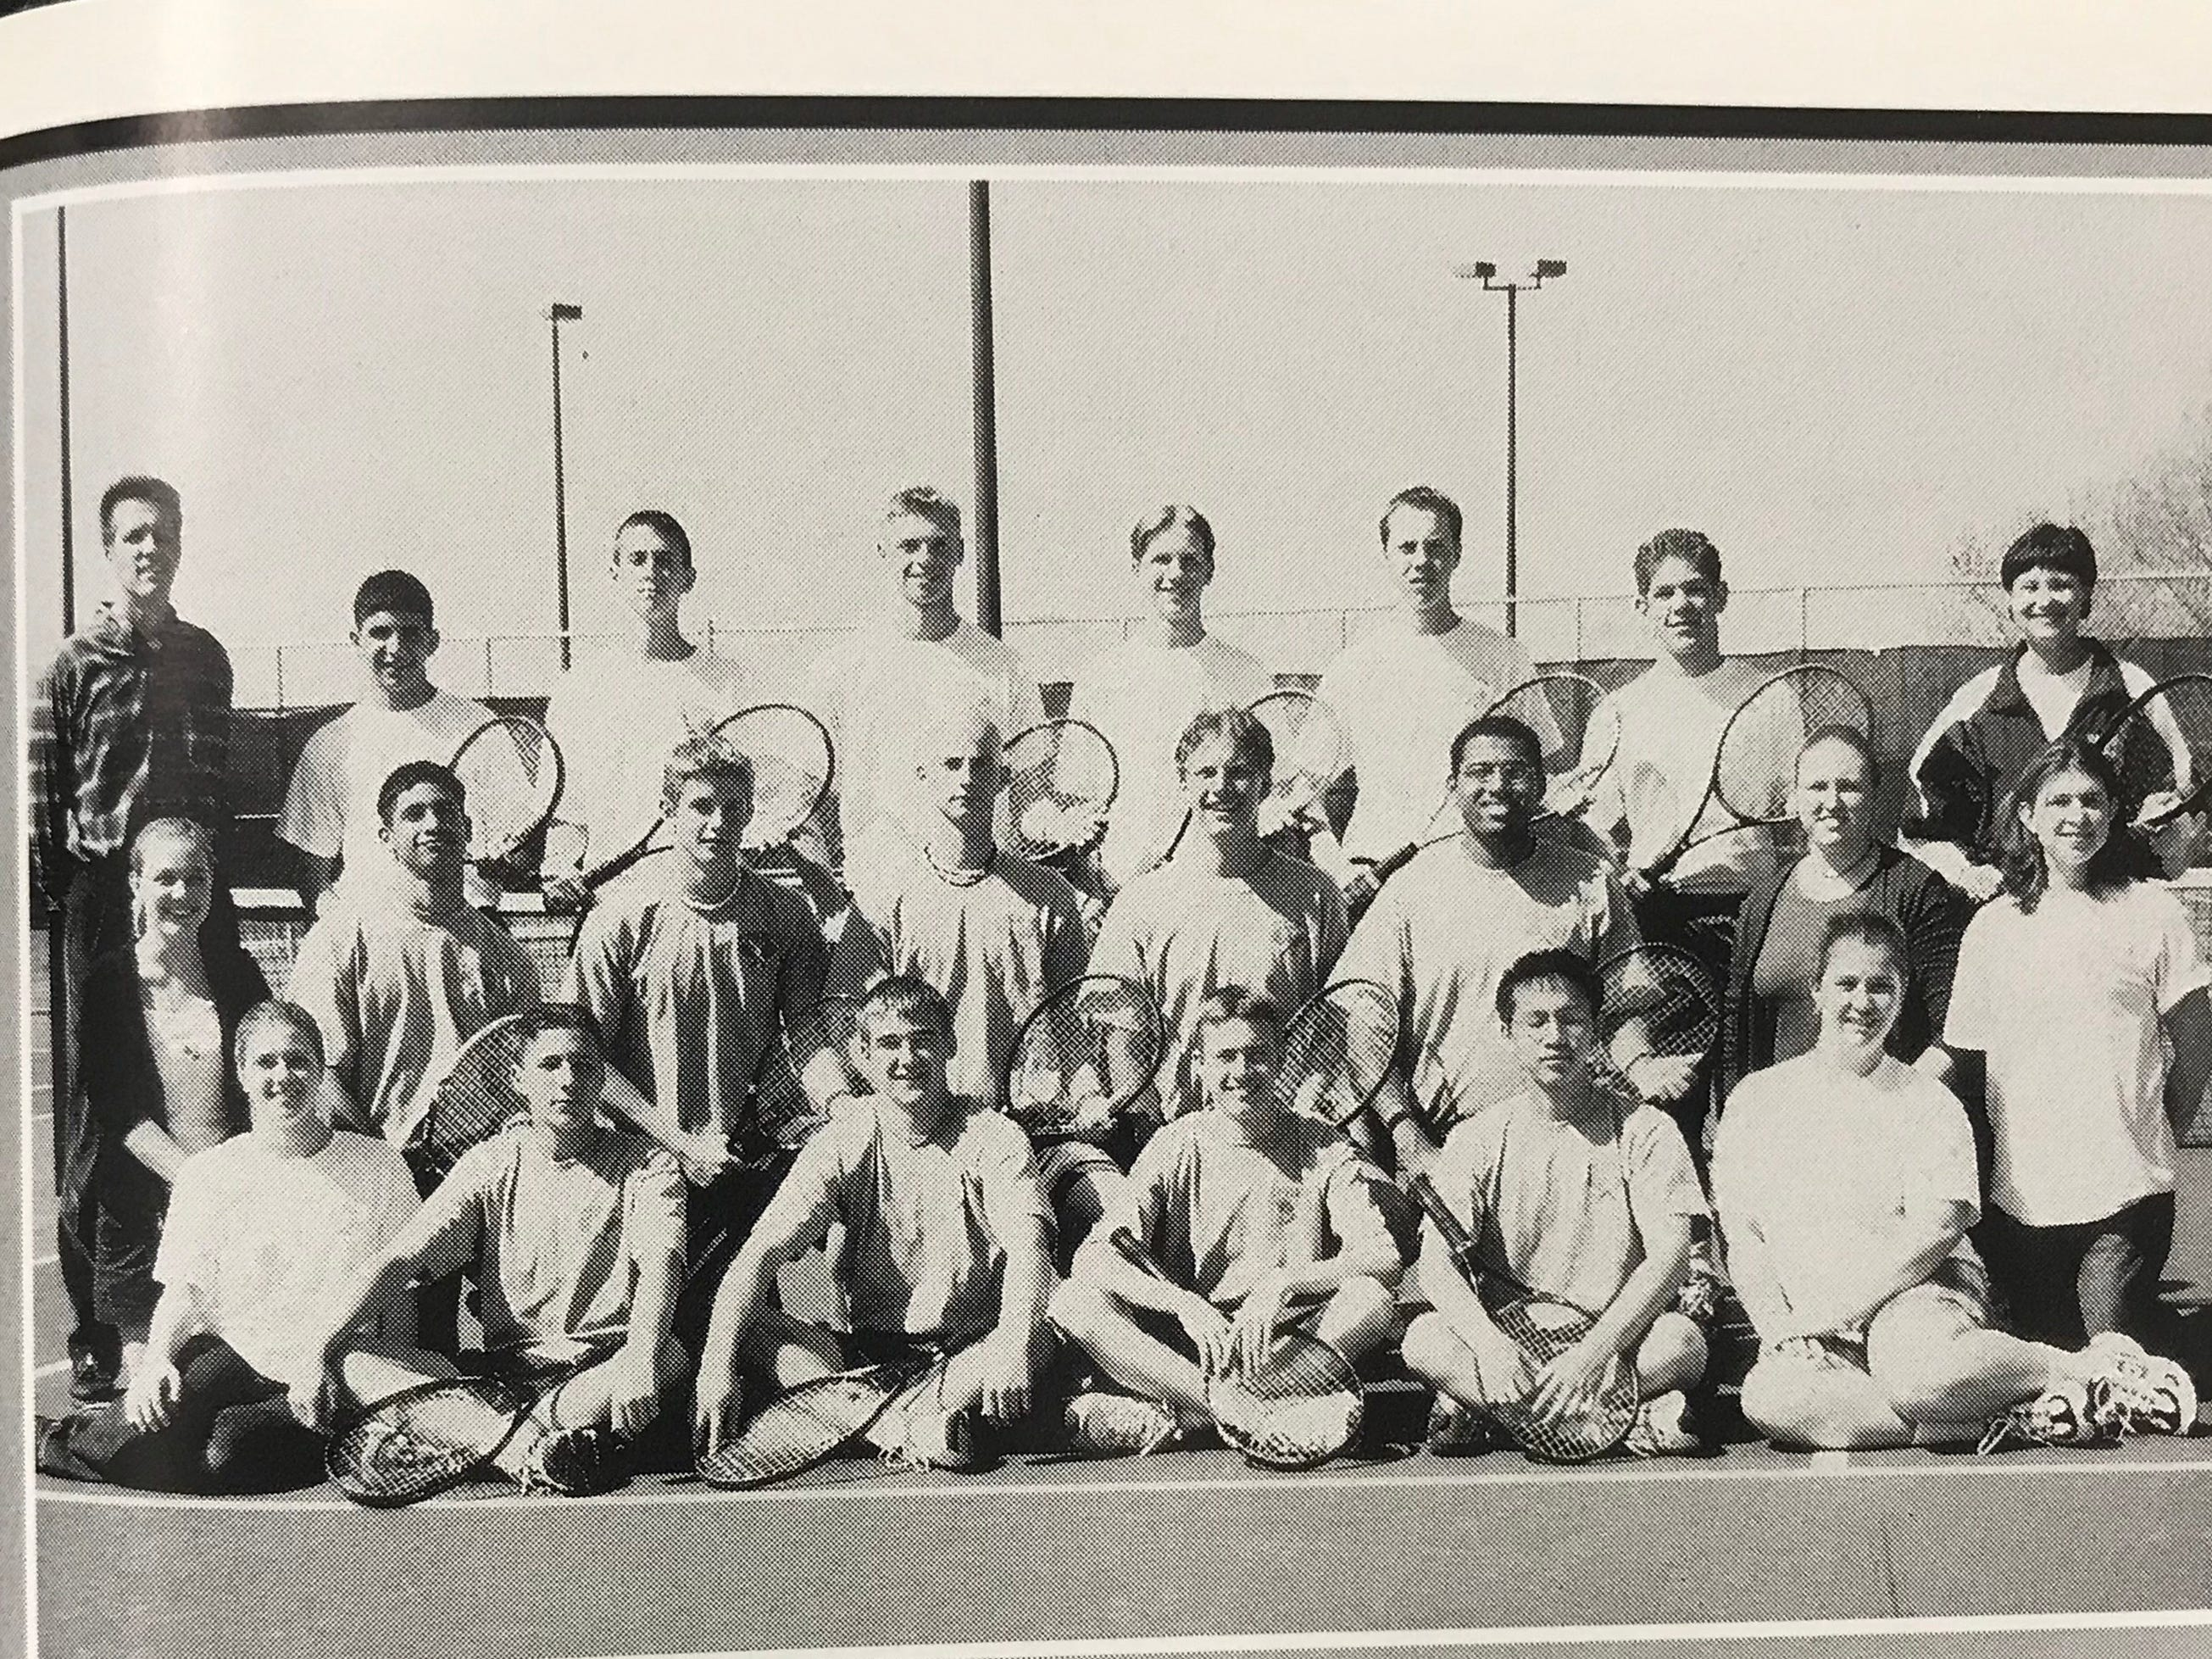 Milwaukee Police Department Officer Matthew Rittner (back row, second from the right) graduated from Greenfield High School (GHS) in 2001. During his time as a student at GHS, Officer Matthew Rittner participated in tennis.